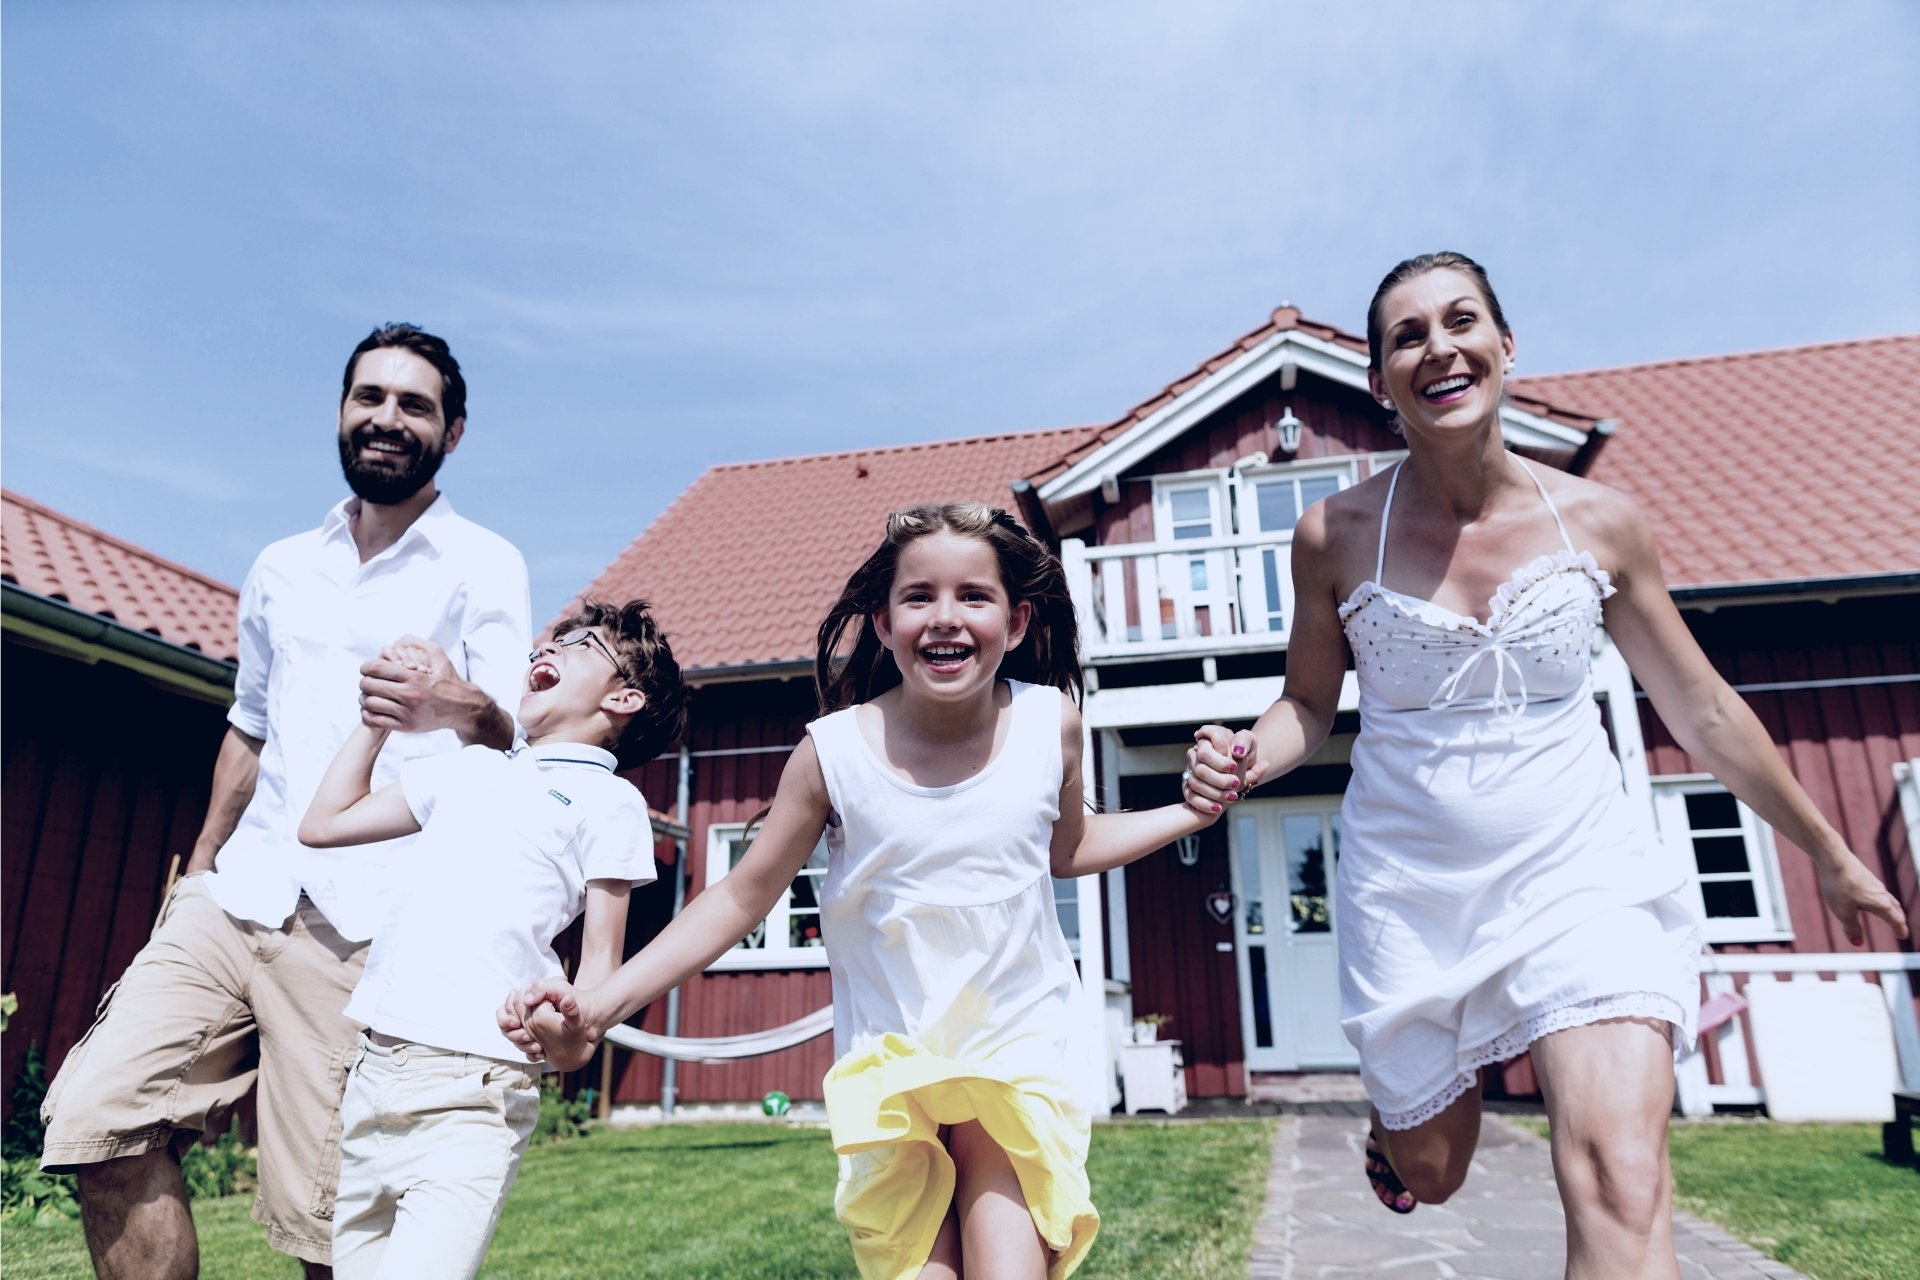 First-time home buyer family in white jumping in front of house